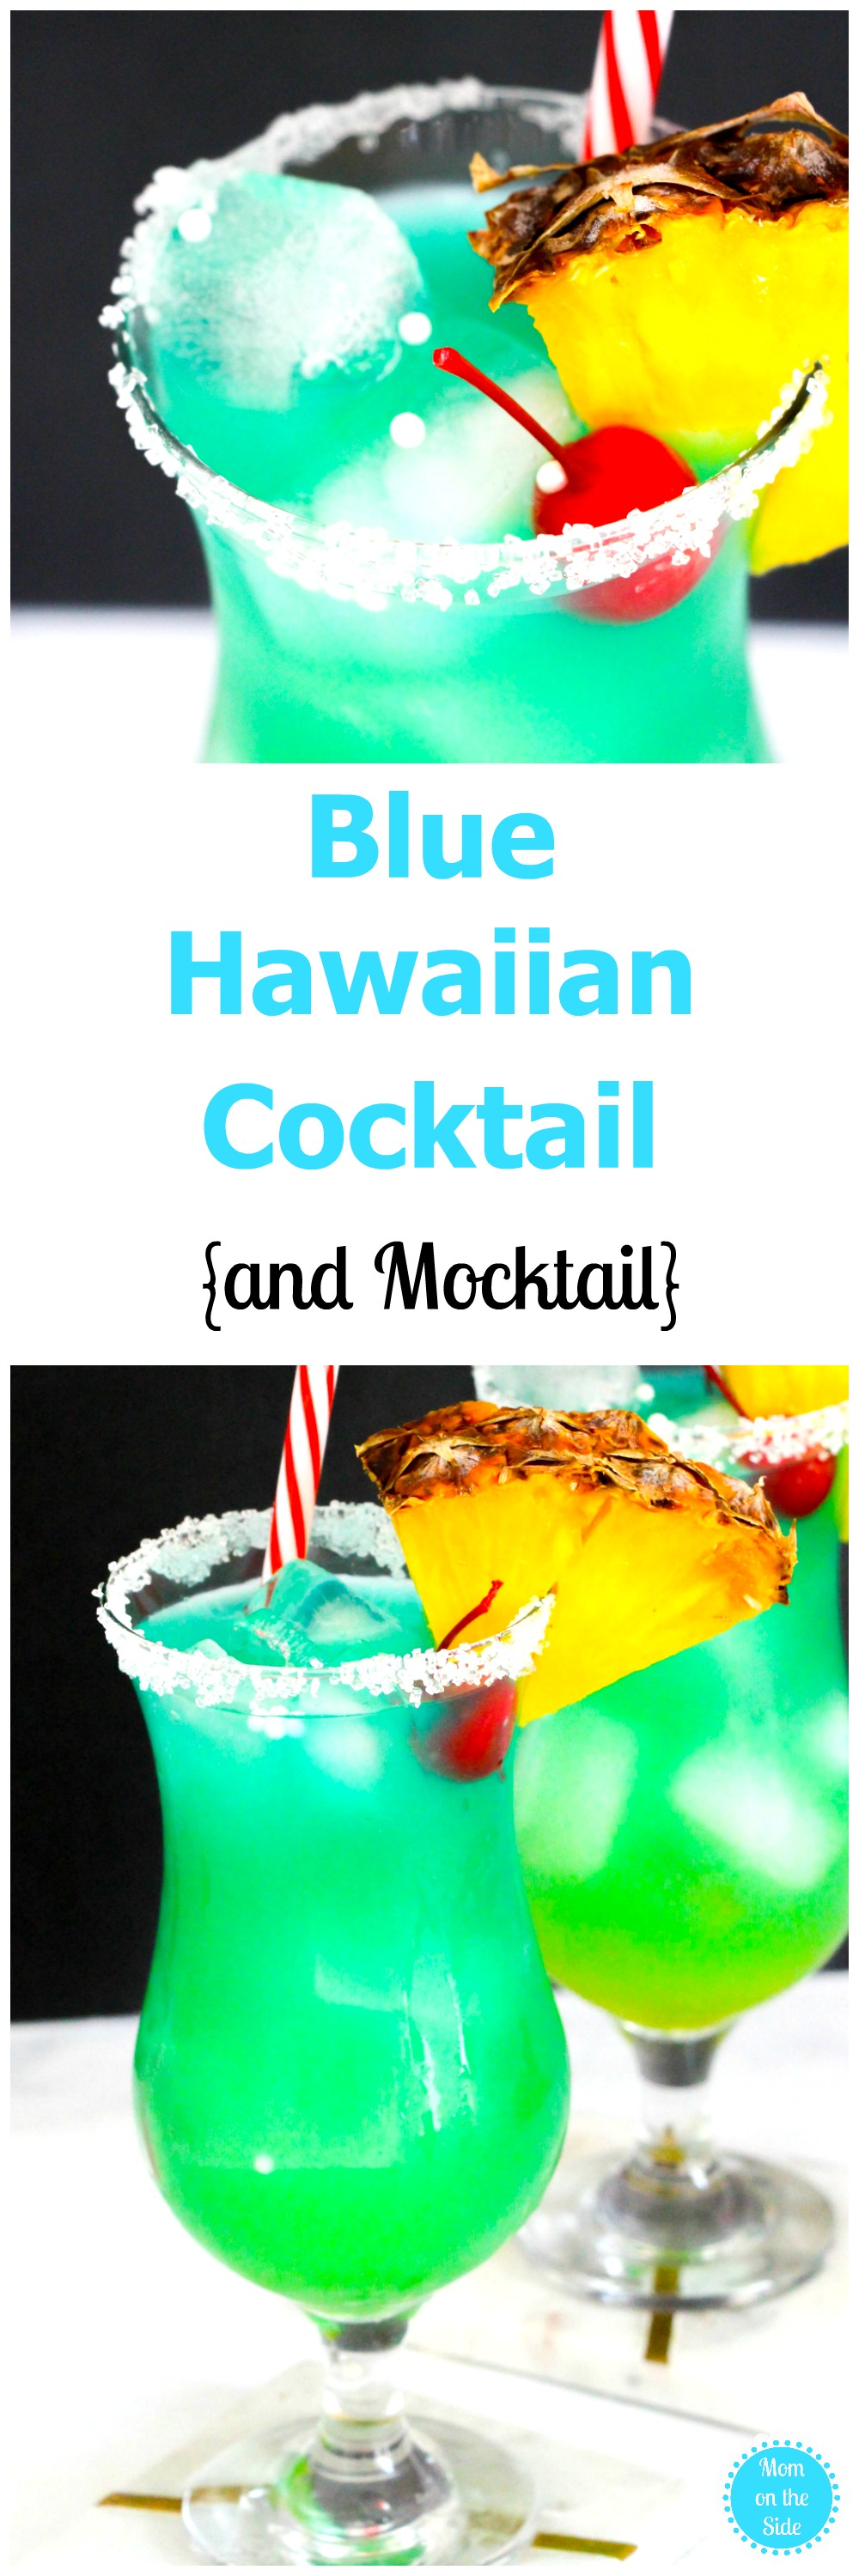 If you want a cocktail that makes you feel like you are on the beach, this Blue Hawaiian Cocktail is it! Plus, I've got a mocktail version as well!